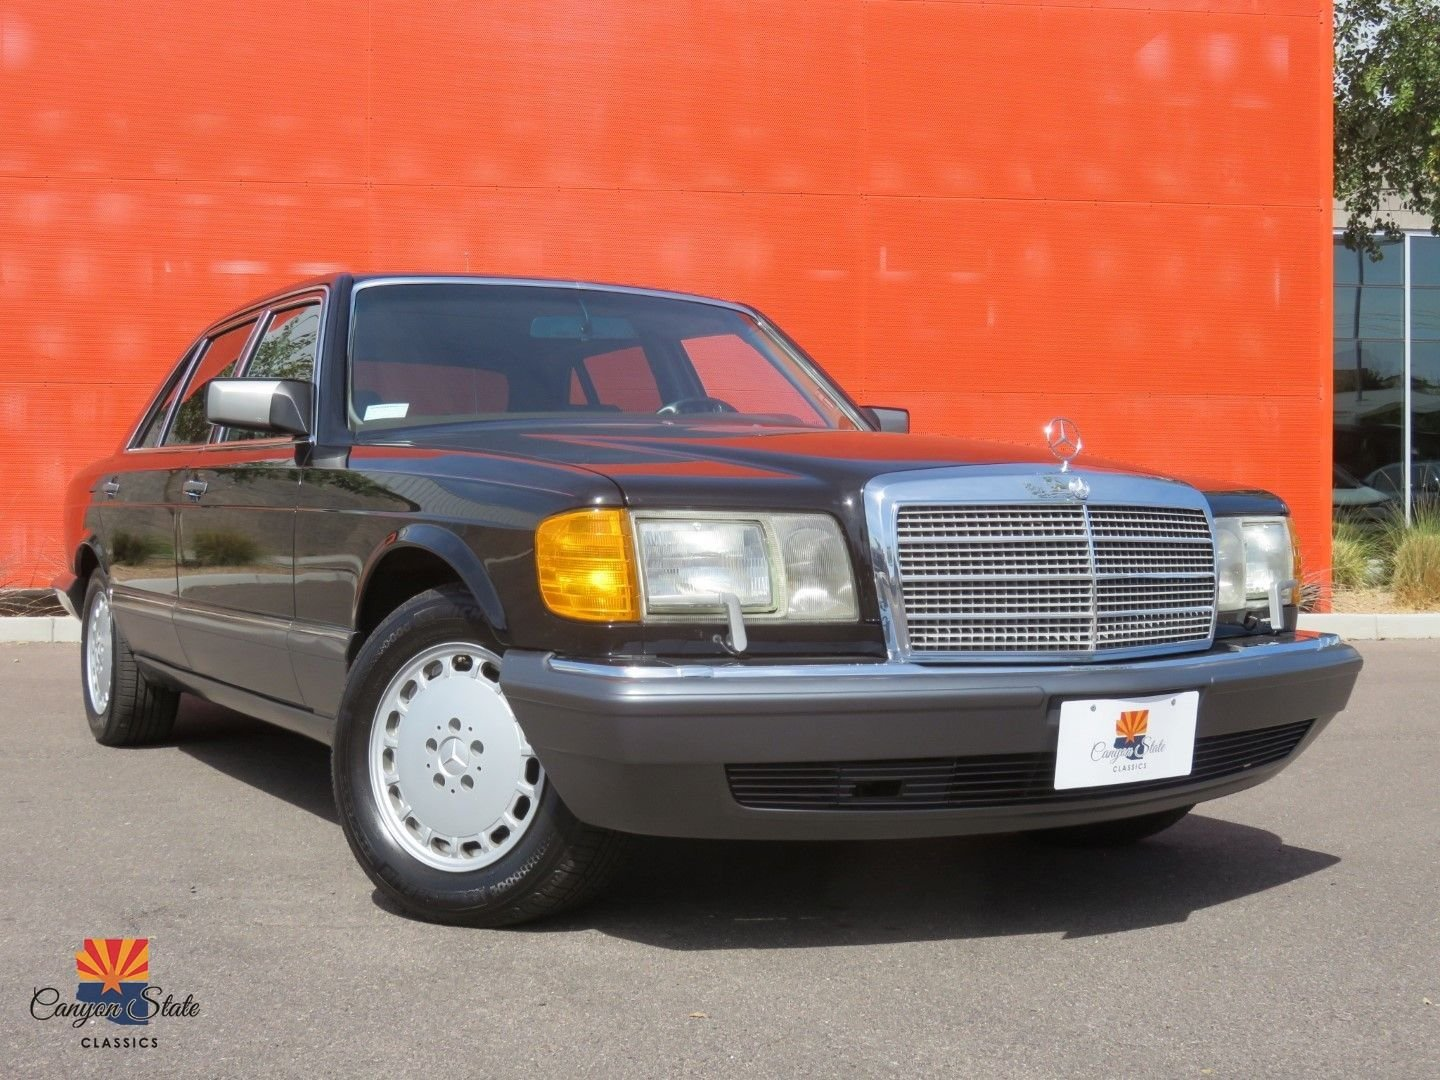 1991 Mercedes Benz 420sel Canyon State Classics